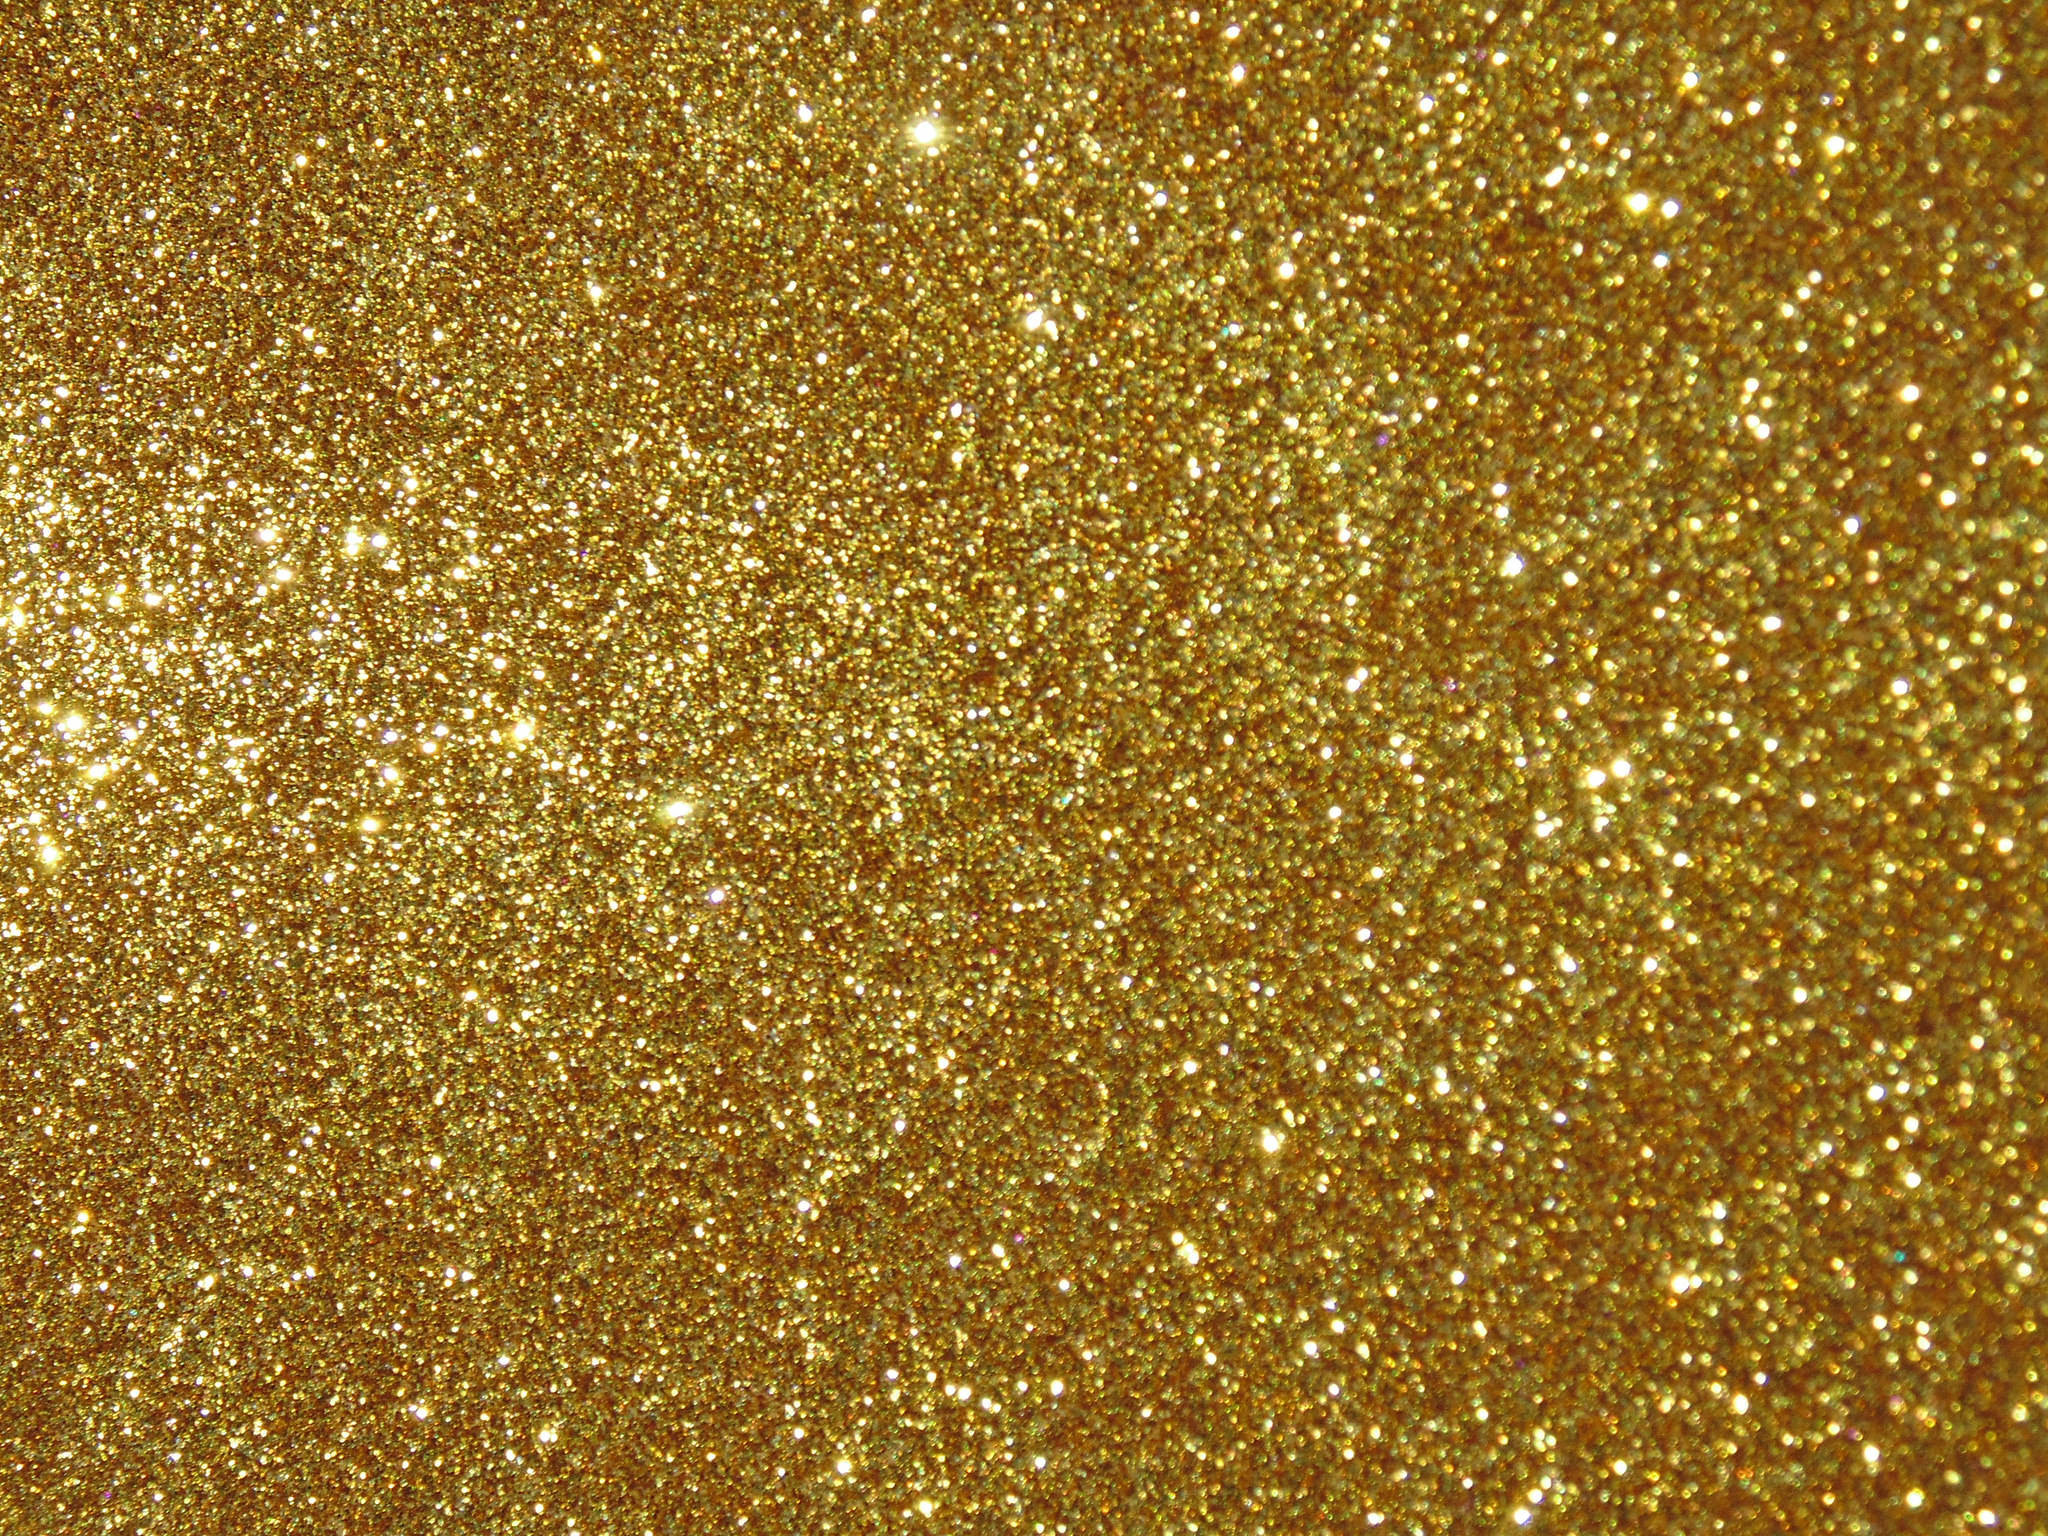 2048x1536 Black Wallpaper with Gold Glitter Best Of 170 Glitter Backgrounds Wallpapers